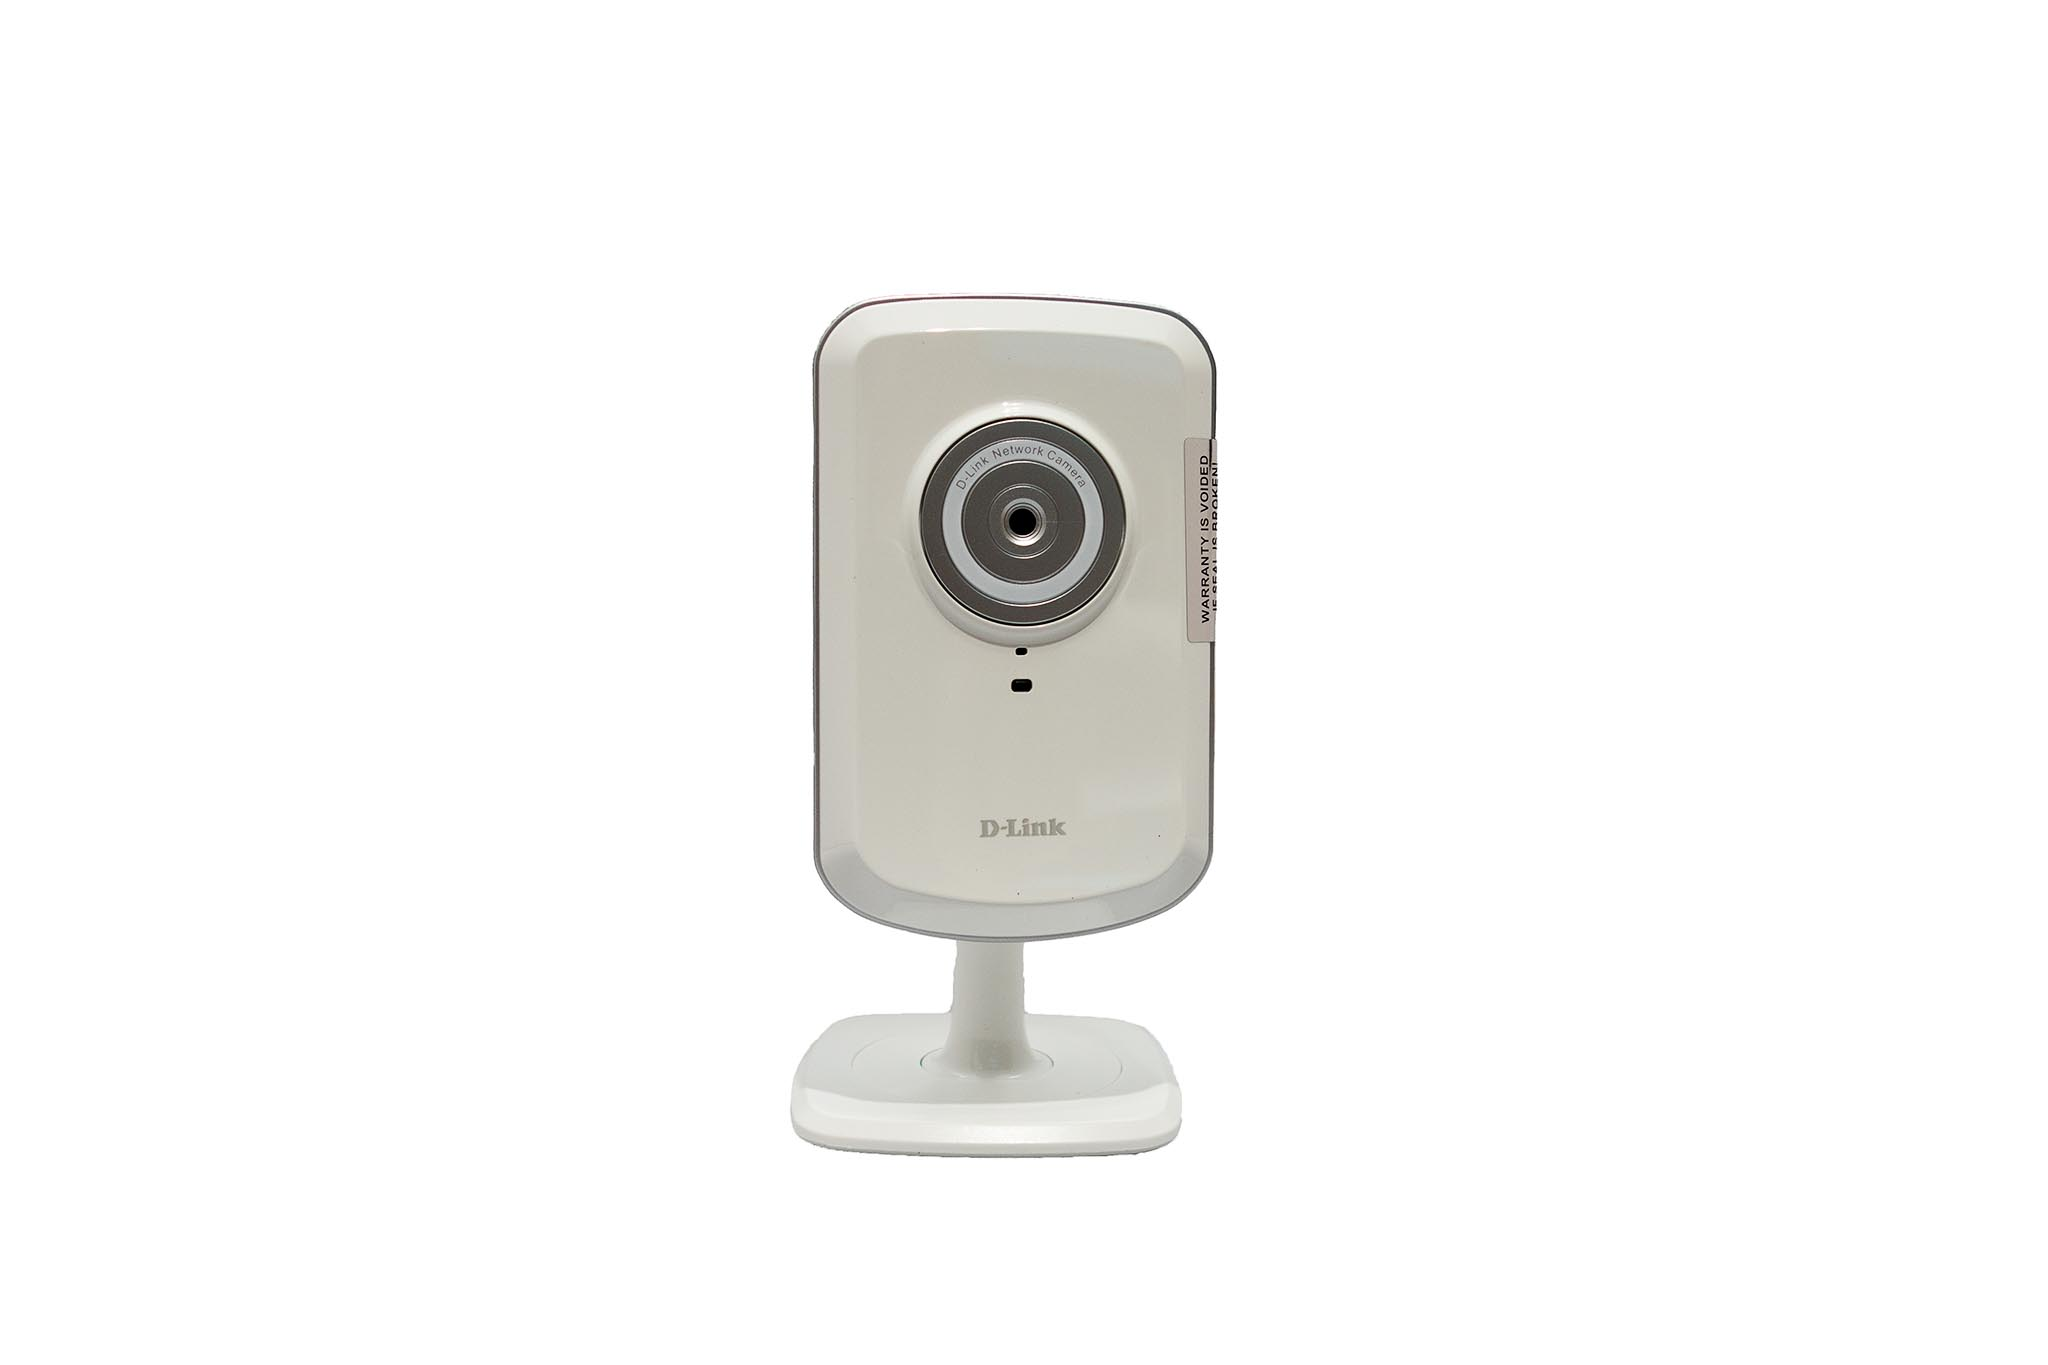 D-Link DCS-930L Network Camera Review